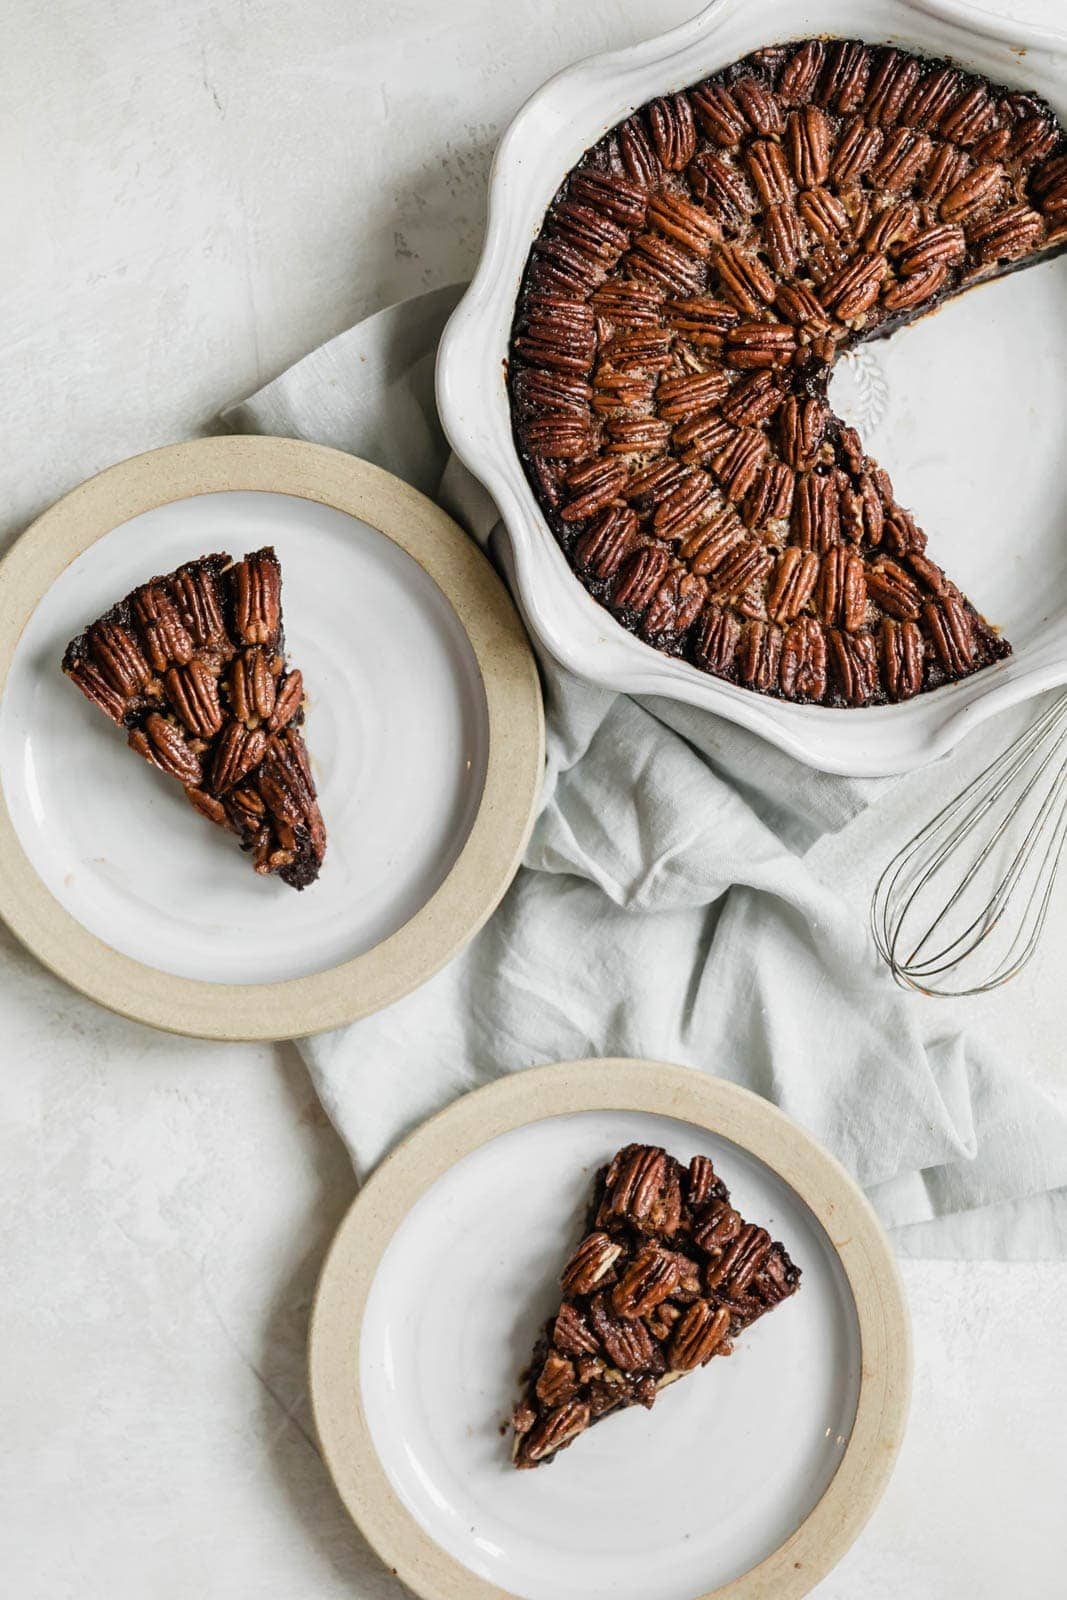 A Brownie Pecan Pie to end all other pecan pies. Fudgy, rich, sweet, nutty, and chocolatey. Calling this a crowd-pleaser is an understatement.